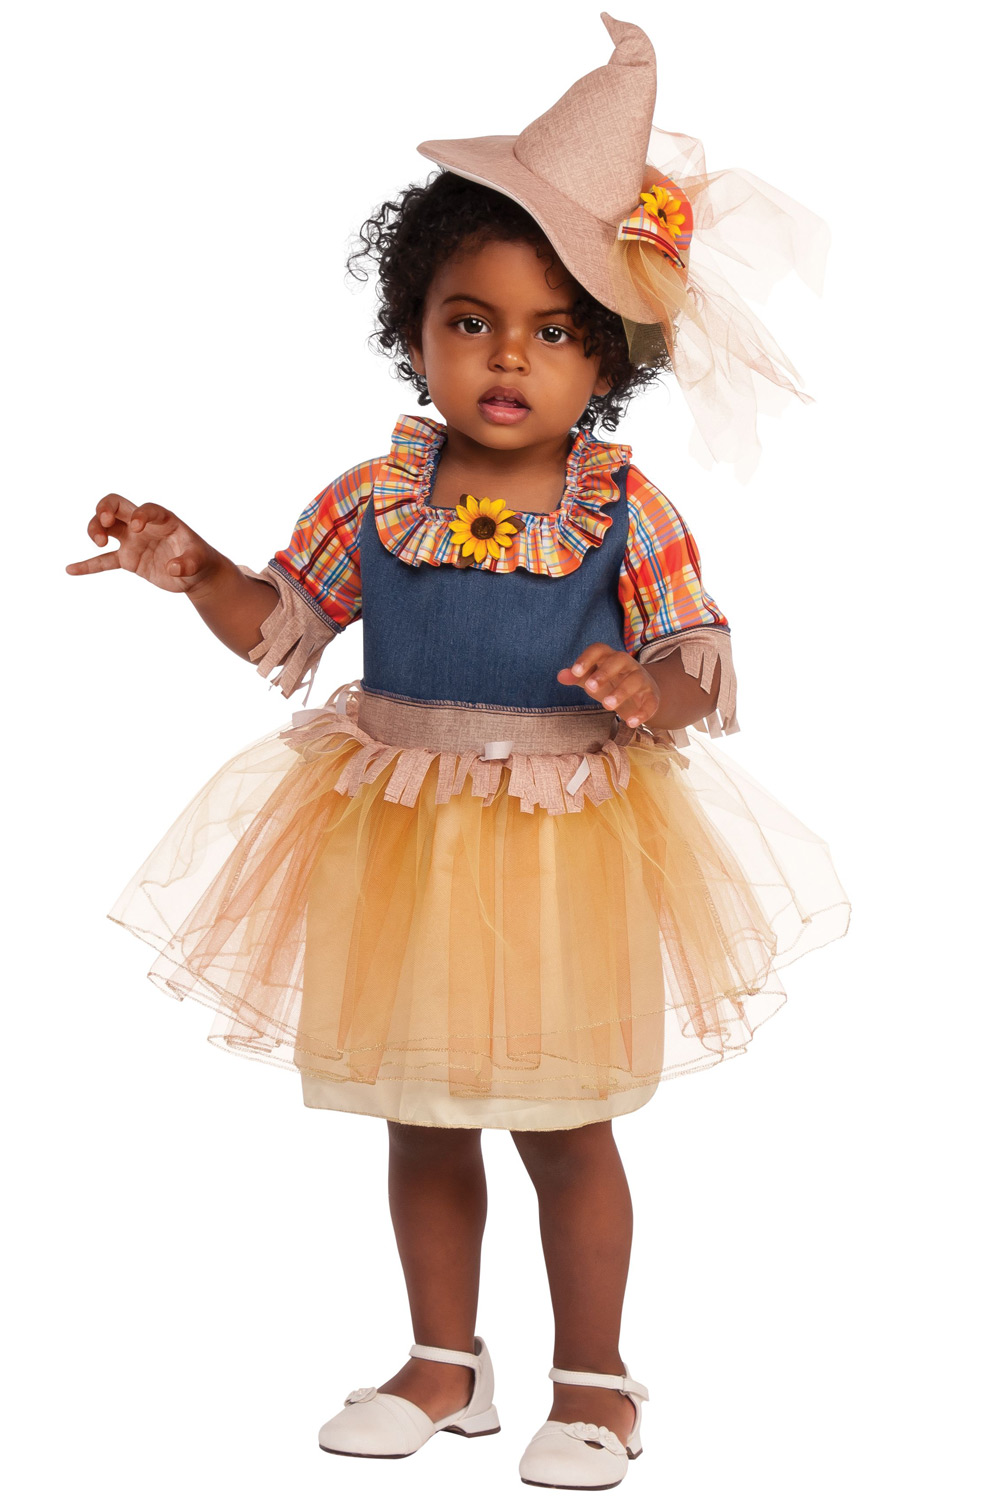 Storybook Costumes - Fairytale Character Costume Ideas for ...